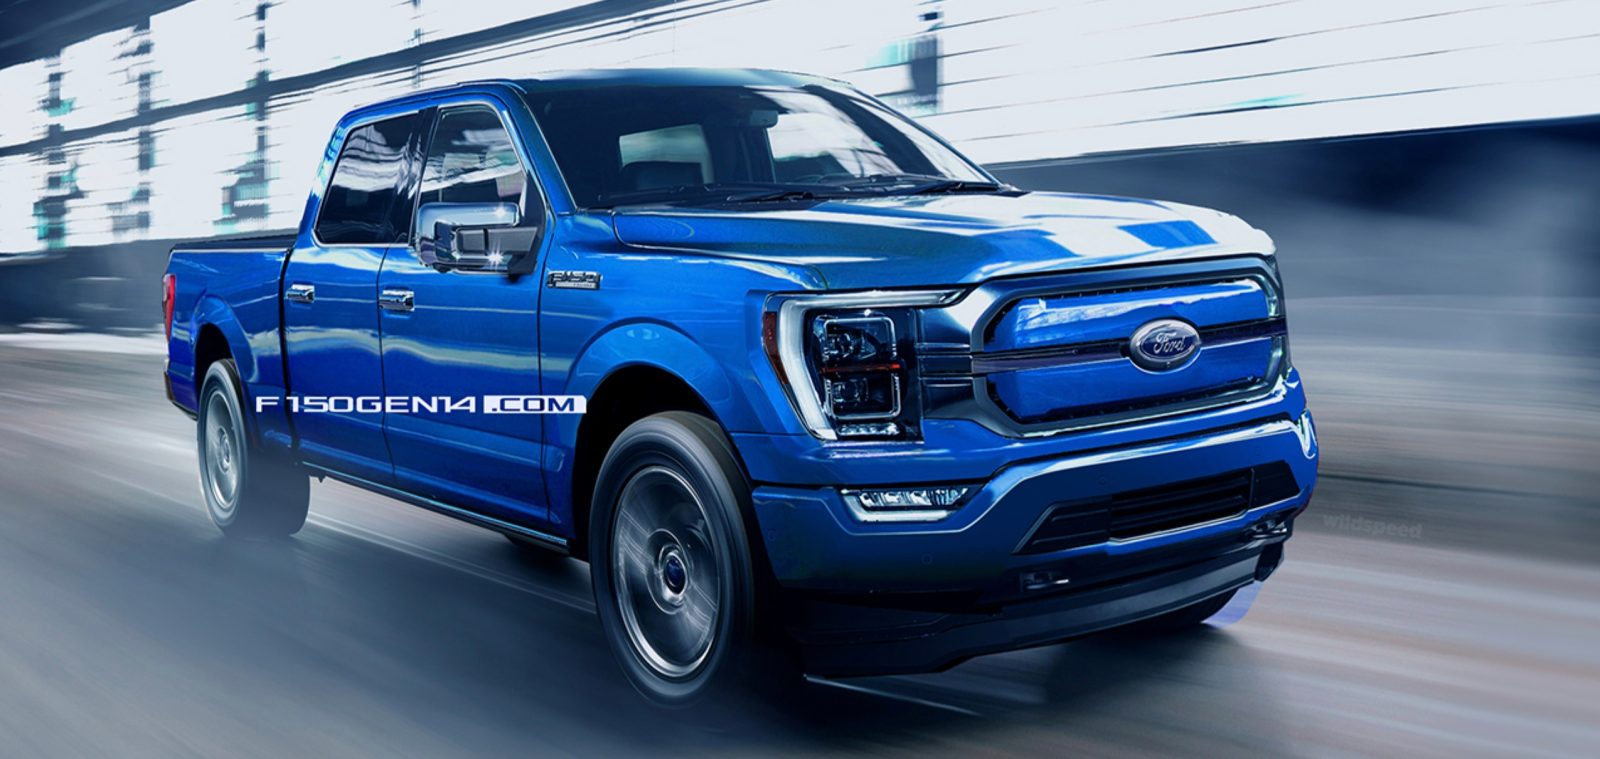 Ford F150 Electric 2022 Rendered Based